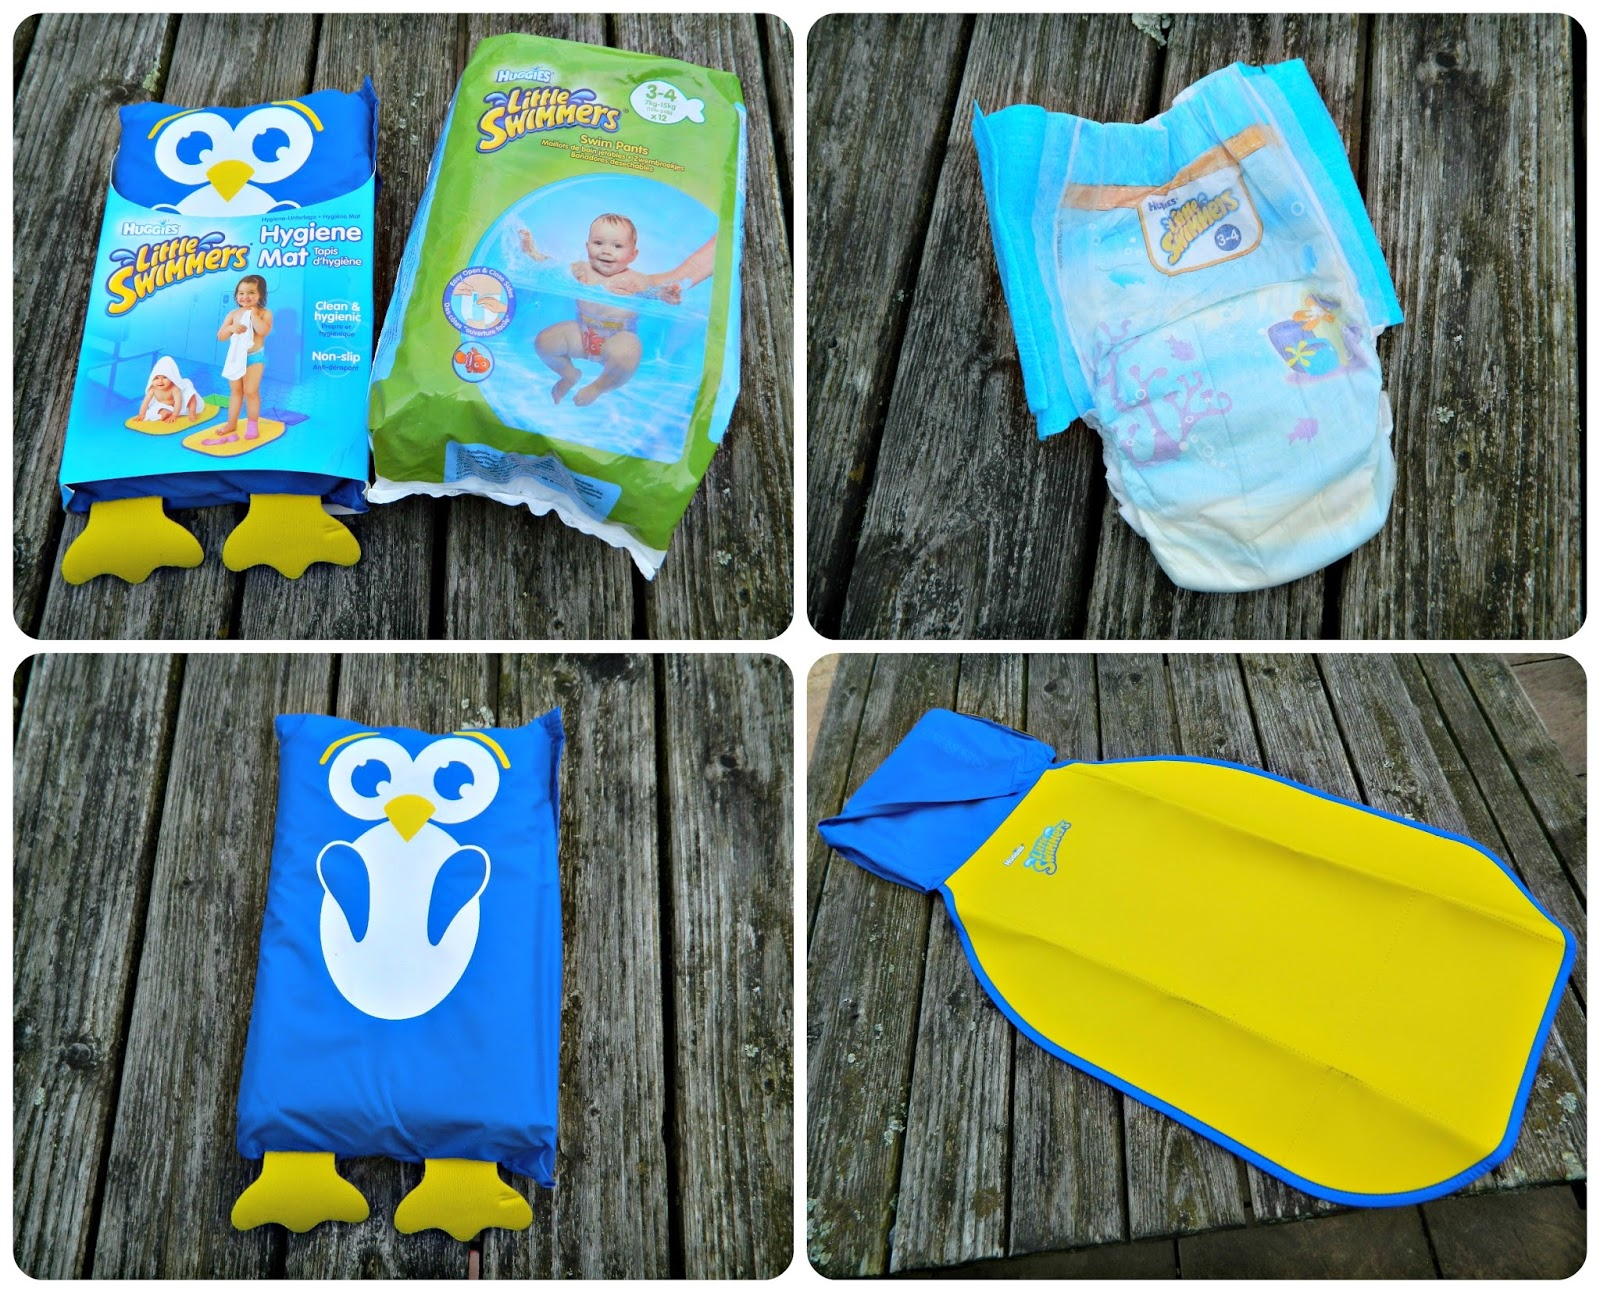 Huggies Little Swimmers Swim nappies and Hygiene Mats